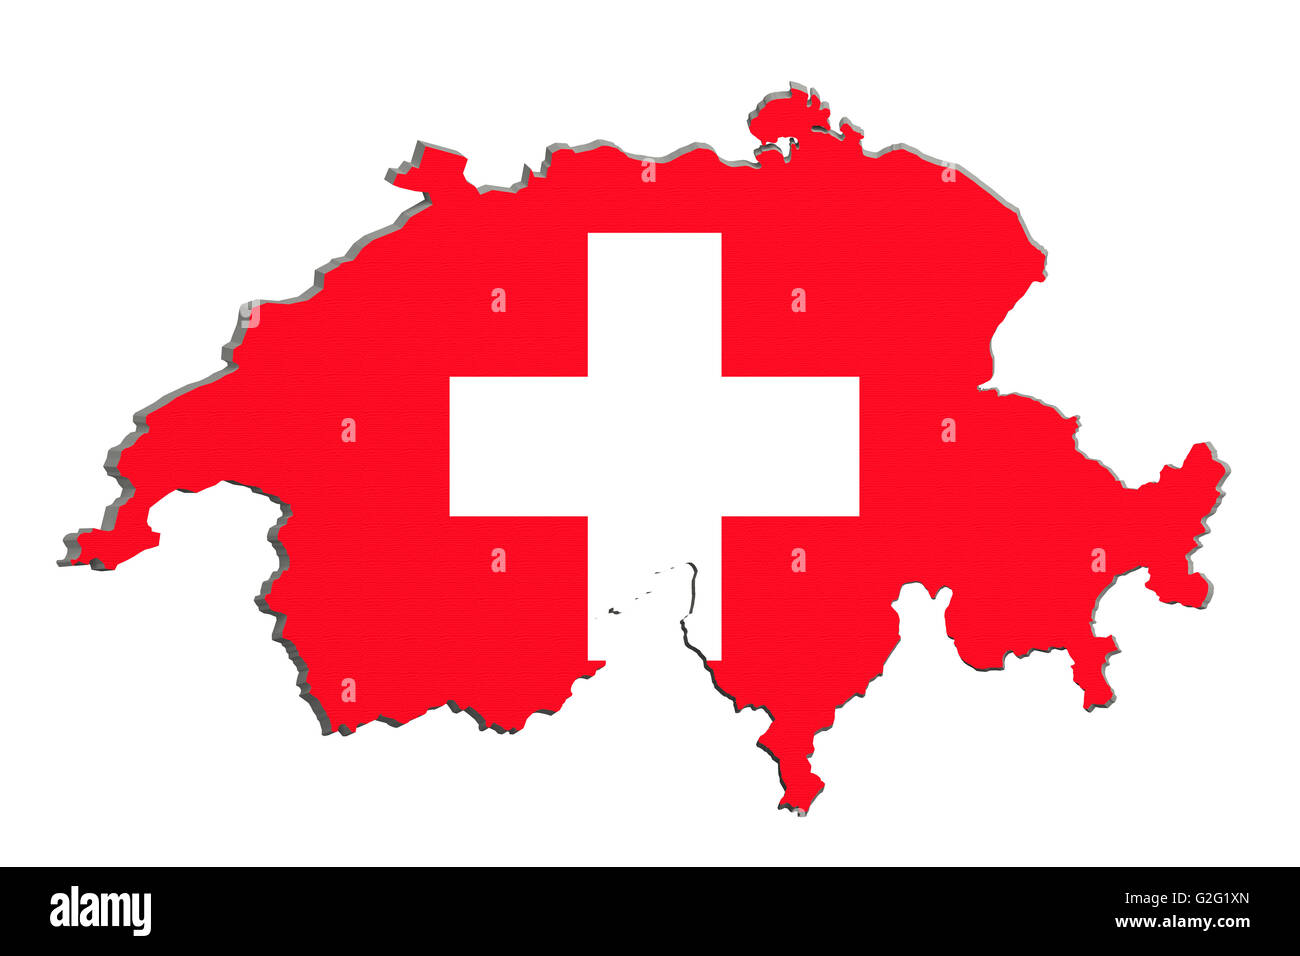 3d rendering of Switzerland map and flag on background. - Stock Image